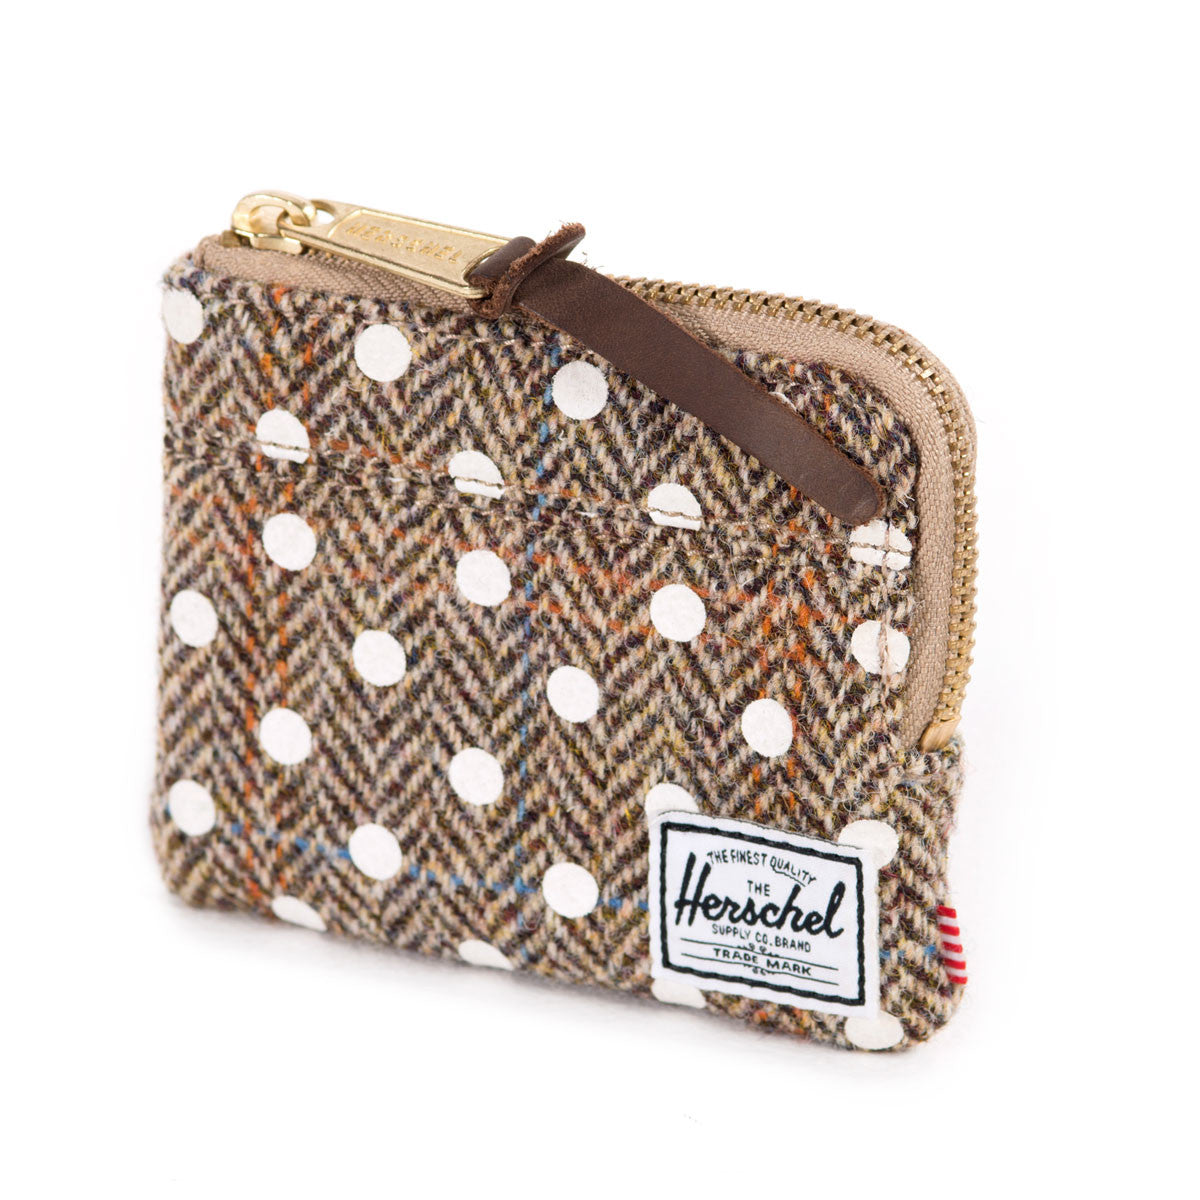 Herschel Supply Co.: Johnny Wallet - Harris Tweed / White Polka Dot